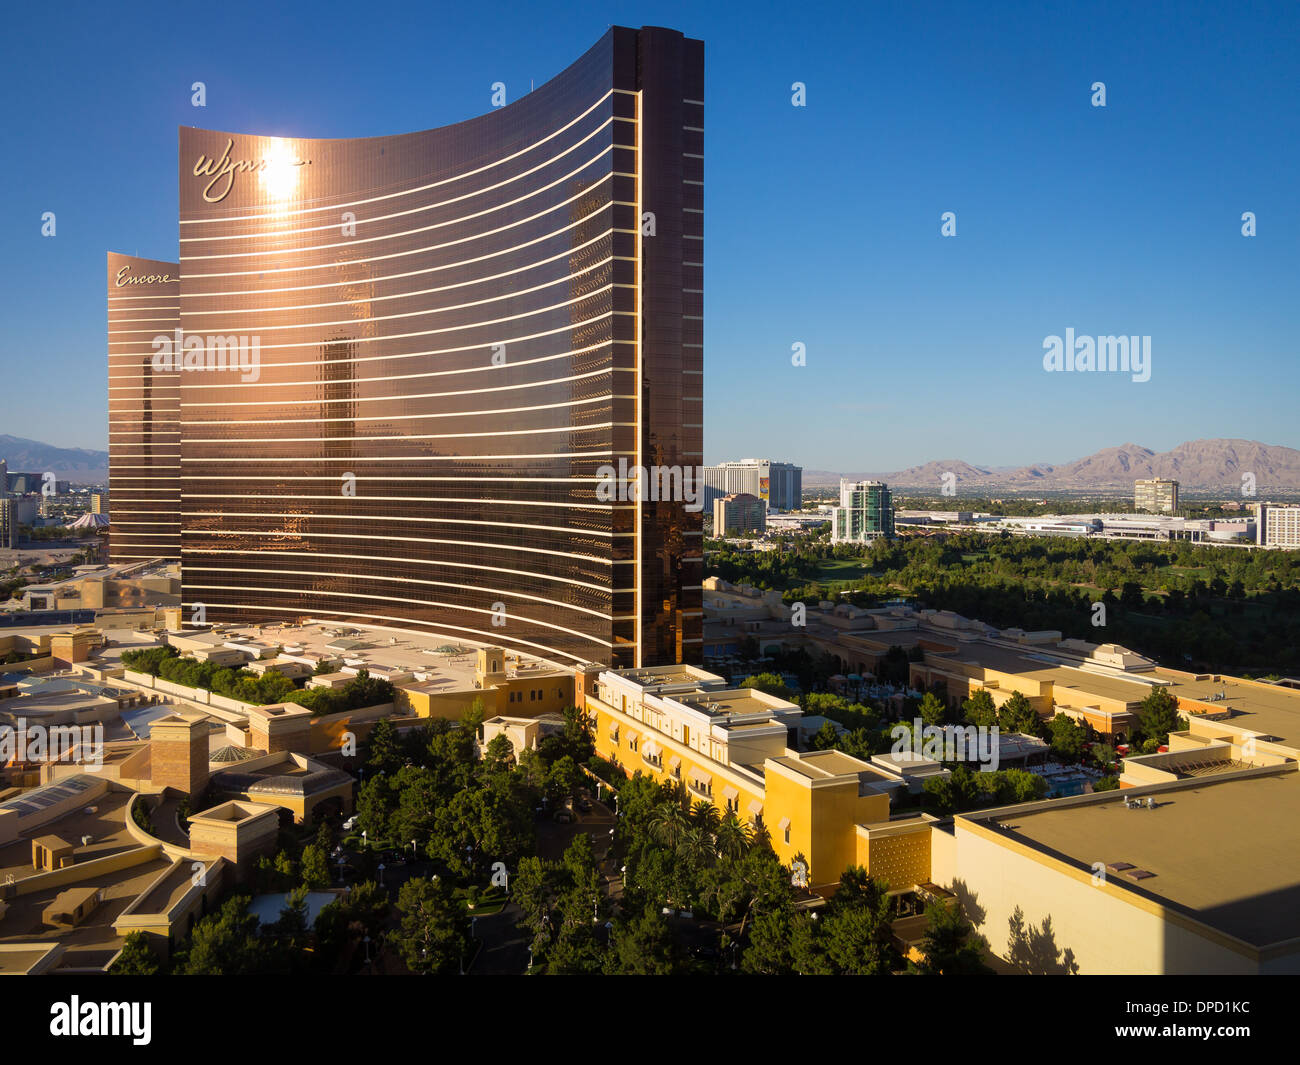 Hotels along 'The Strip' in Las Vegas, Nevada - Stock Image